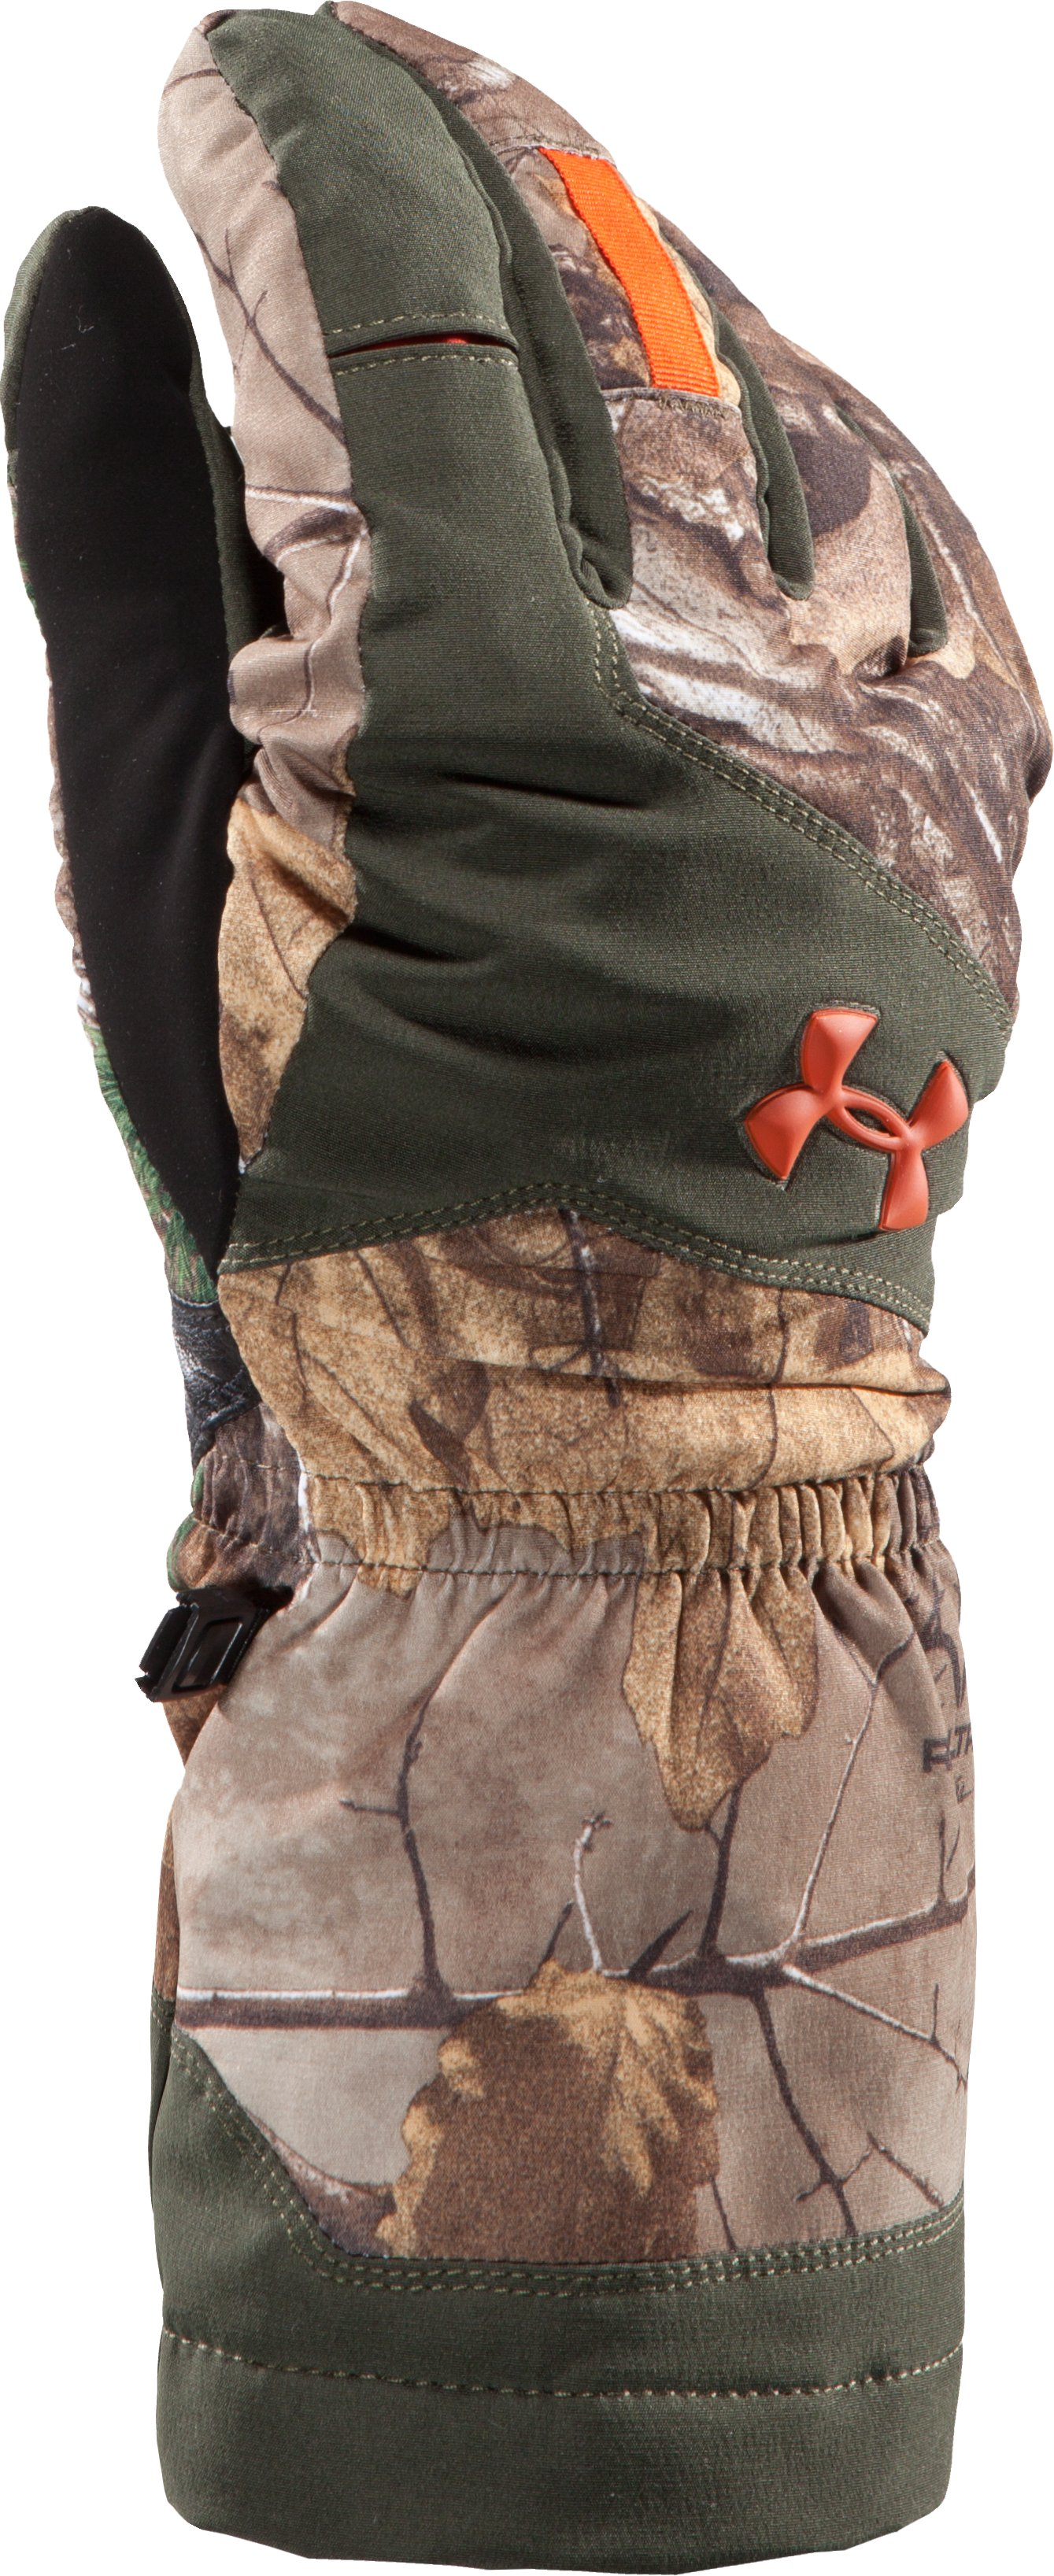 Men's ColdGear® Infrared Gunpowder Gloves, REALTREE AP-XTRA